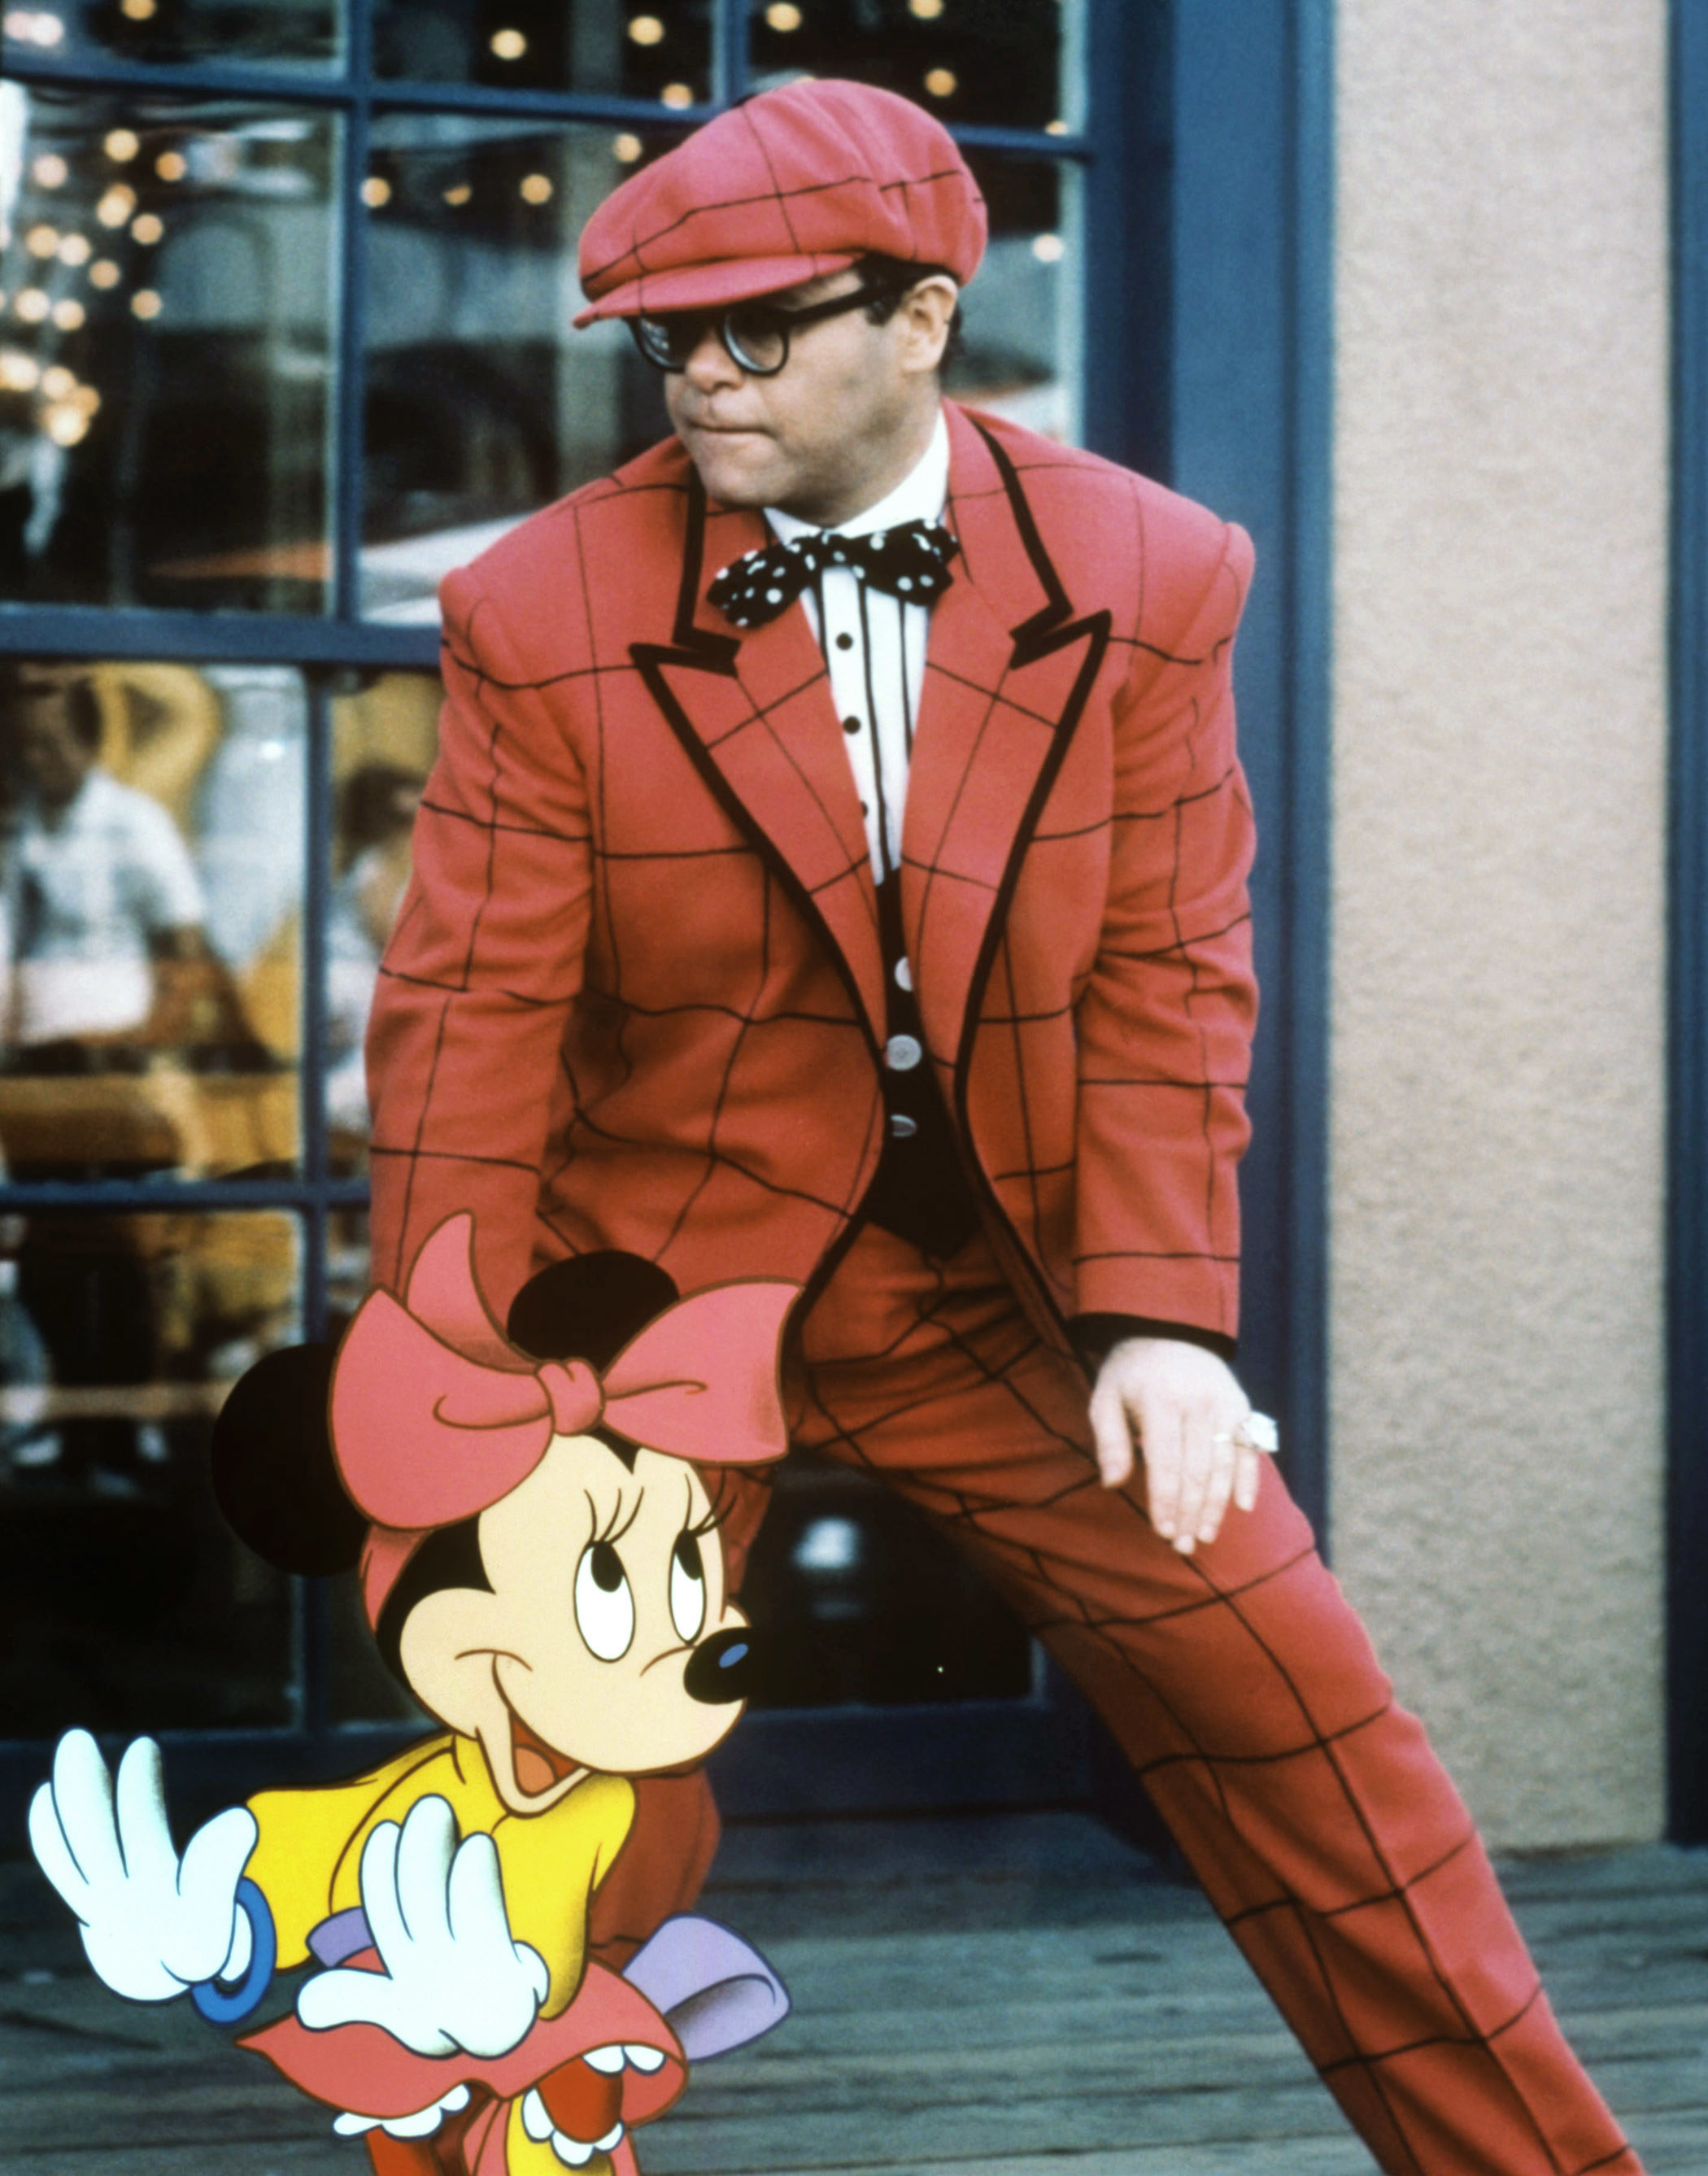 Minnie Mouse dancing with Elton John, who is in a dark pink plaid suit